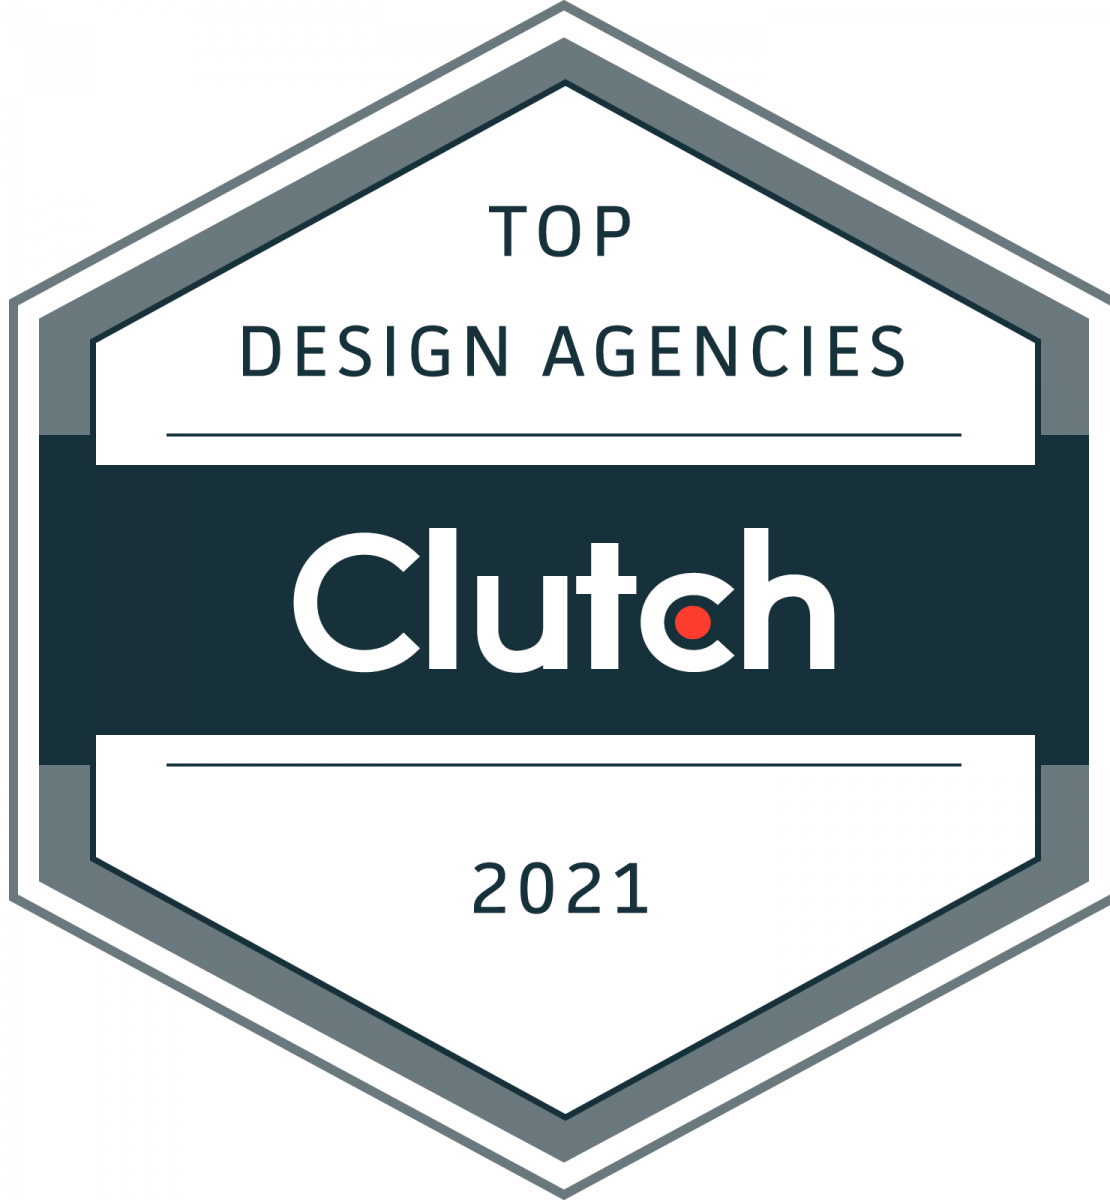 Top Design Agencies 2020